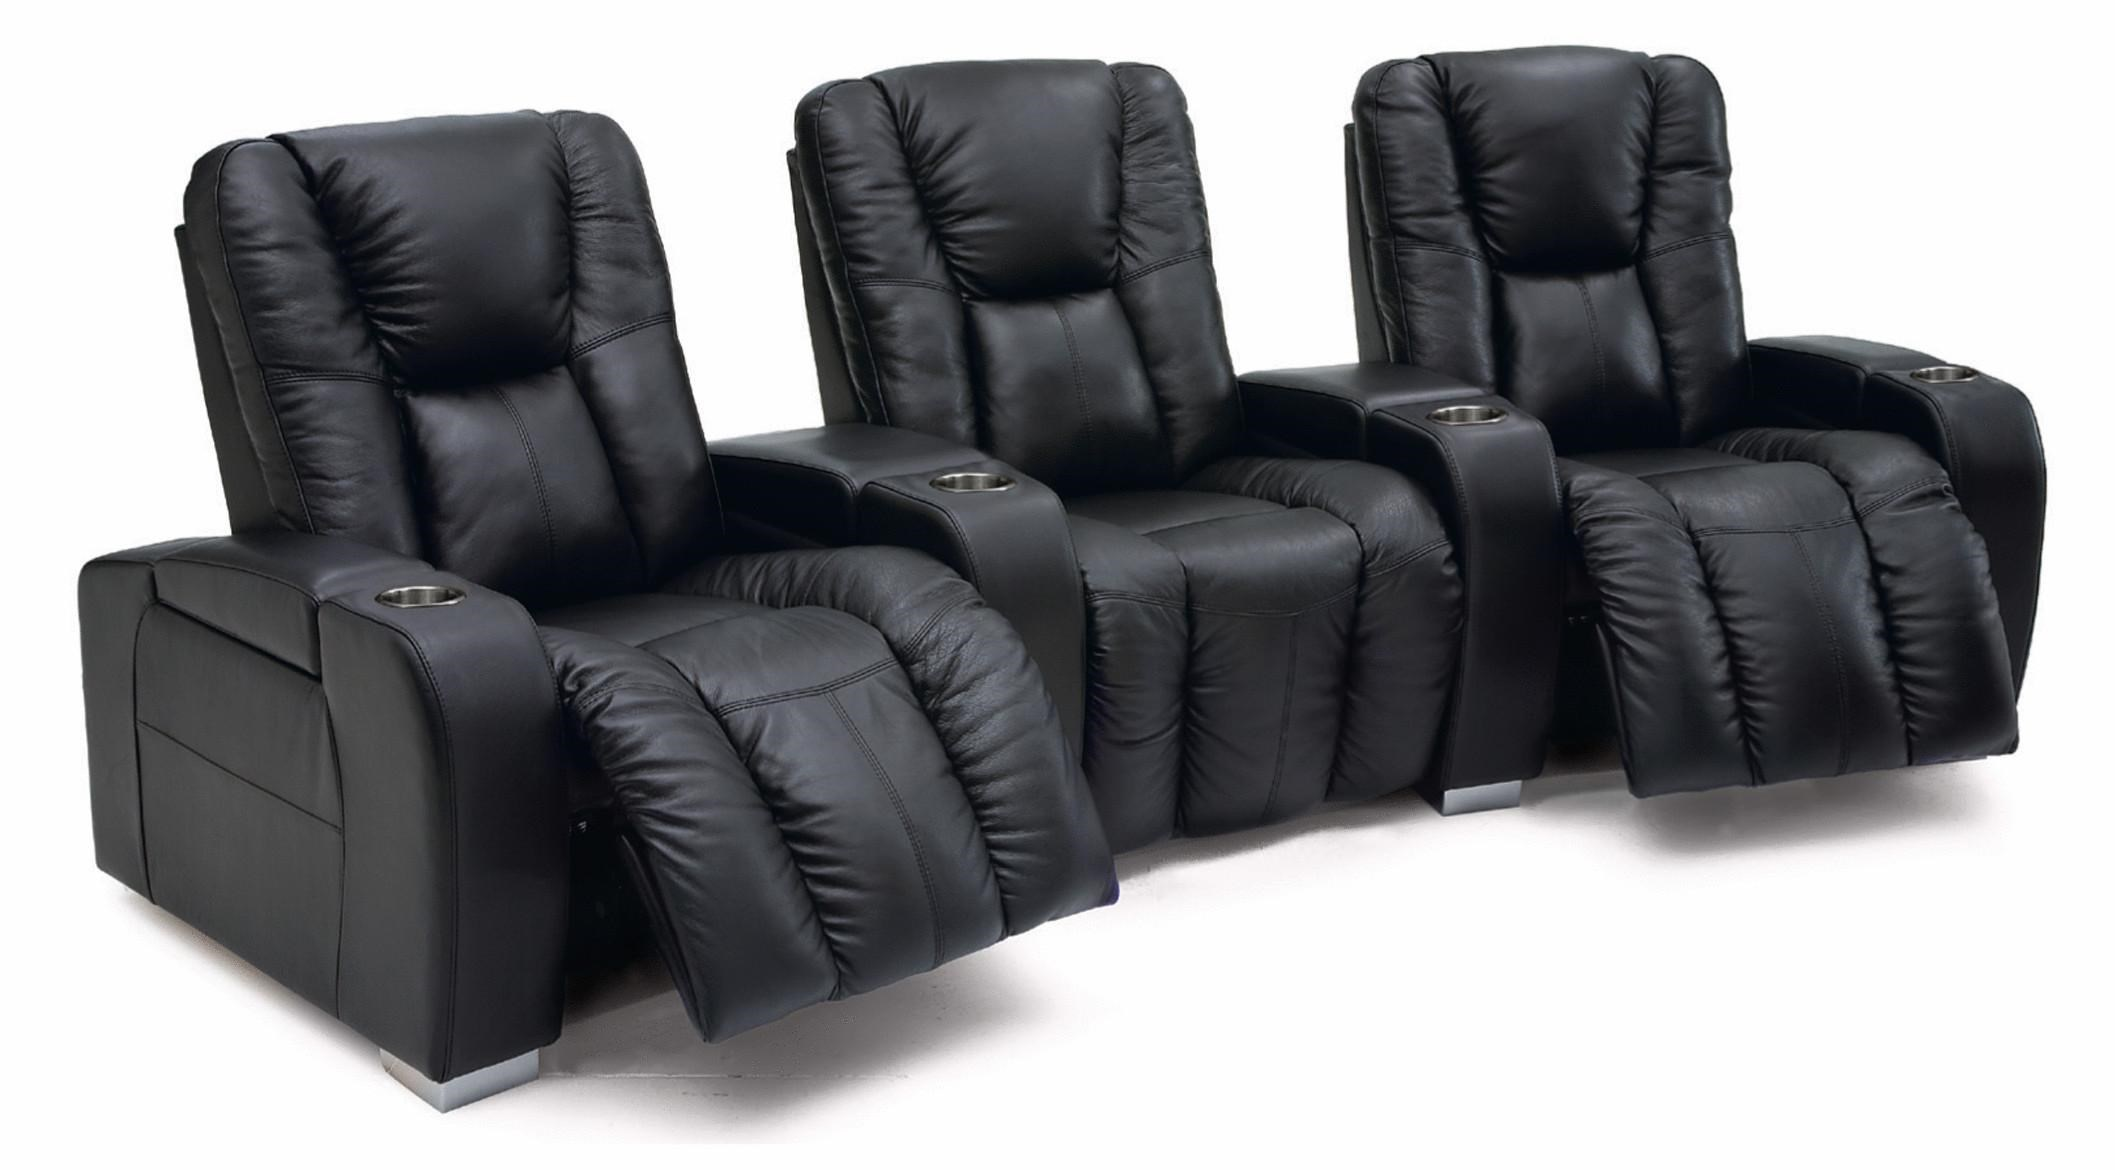 Palliser Media Contemporary 3-Seater Manual Reclining Home Theater Sectional  sc 1 st  Wayside Furniture : home theater sectional seating - Sectionals, Sofas & Couches